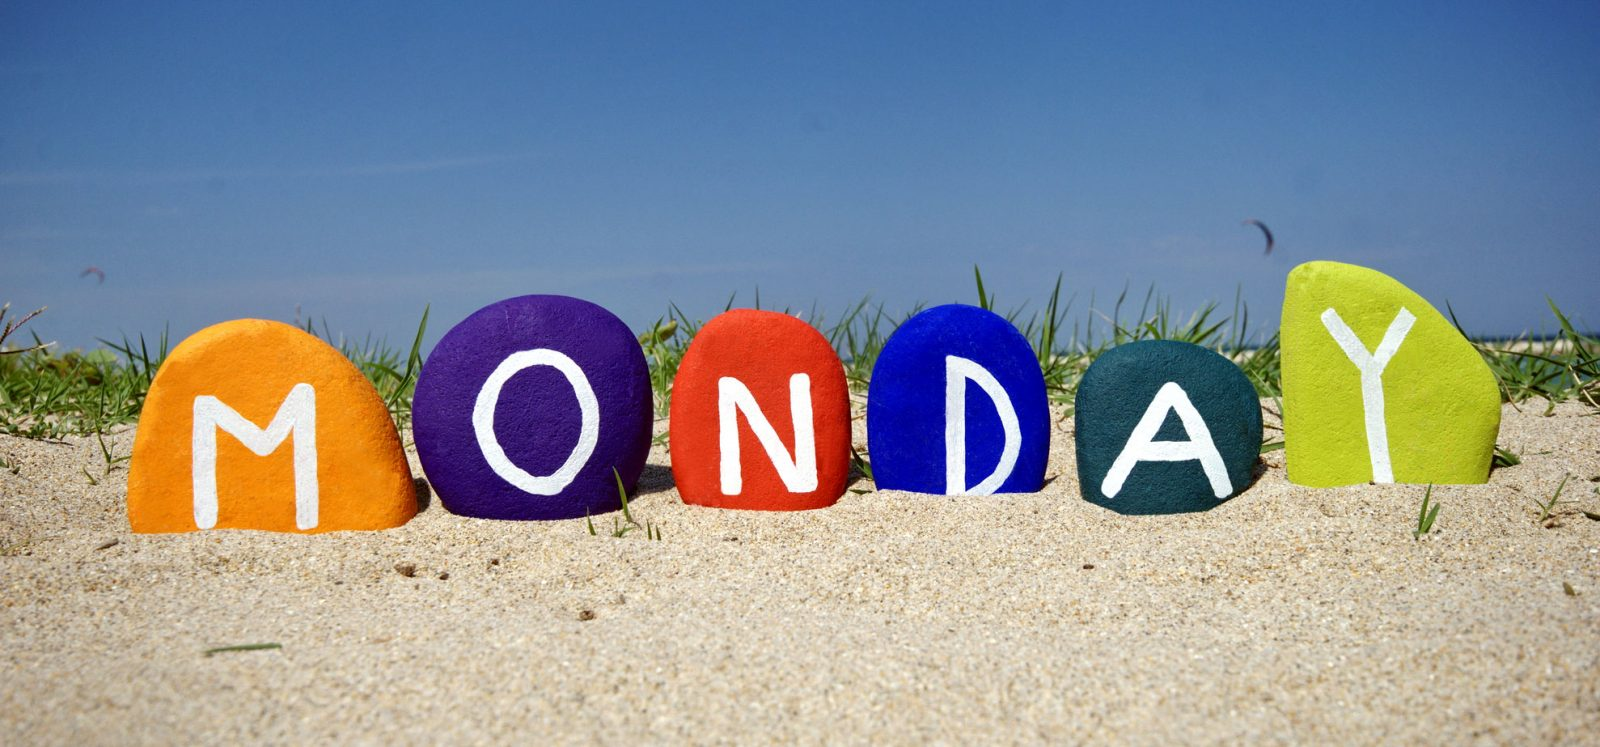 Are Mortgage Rates Lower On Mondays?